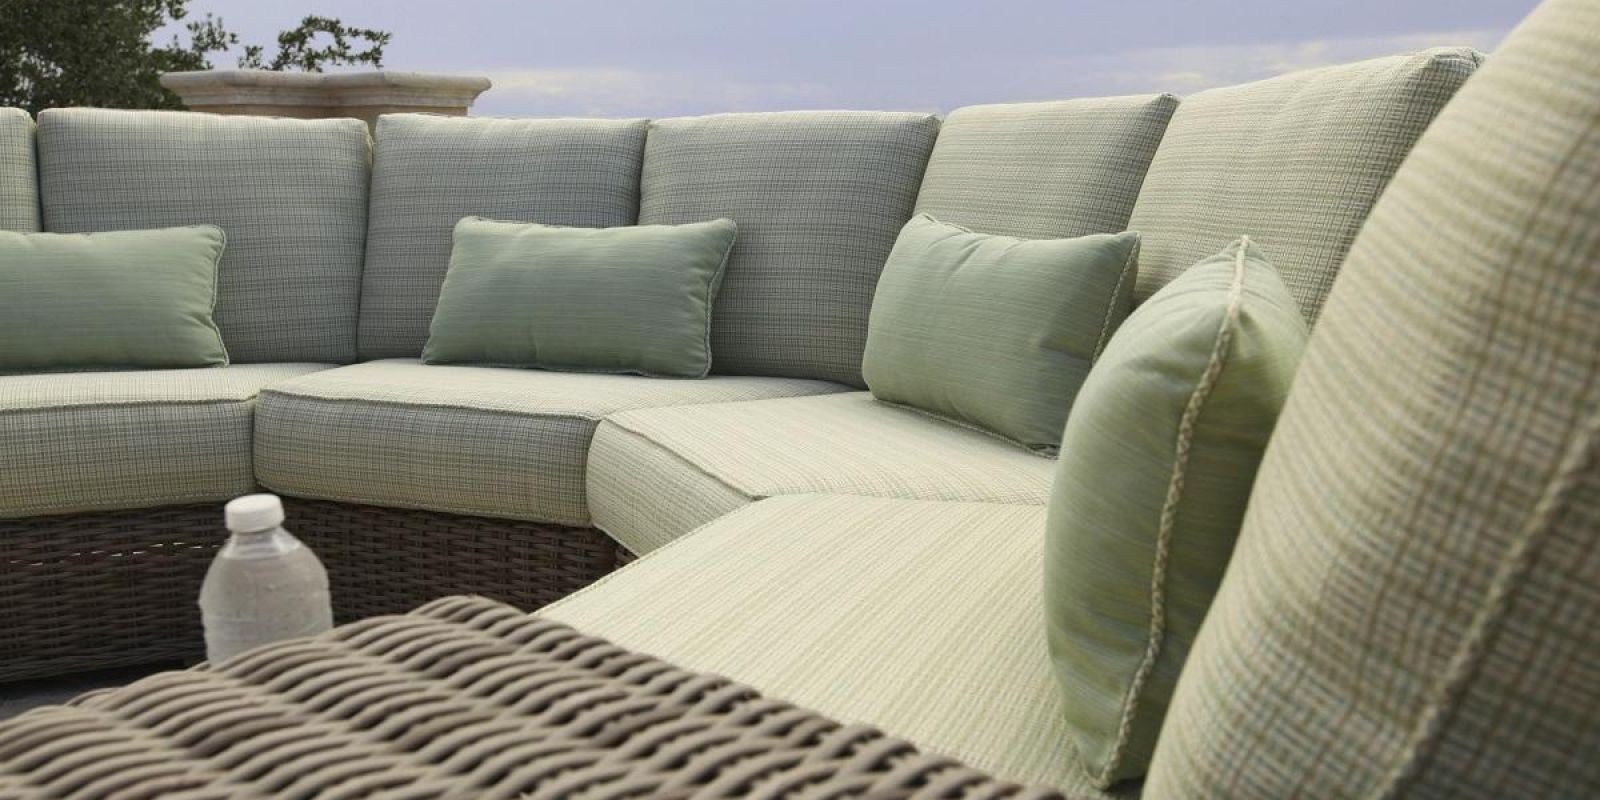 Outdoor Furniture | American Casual Living on Porch & Patio Casual Living id=59388